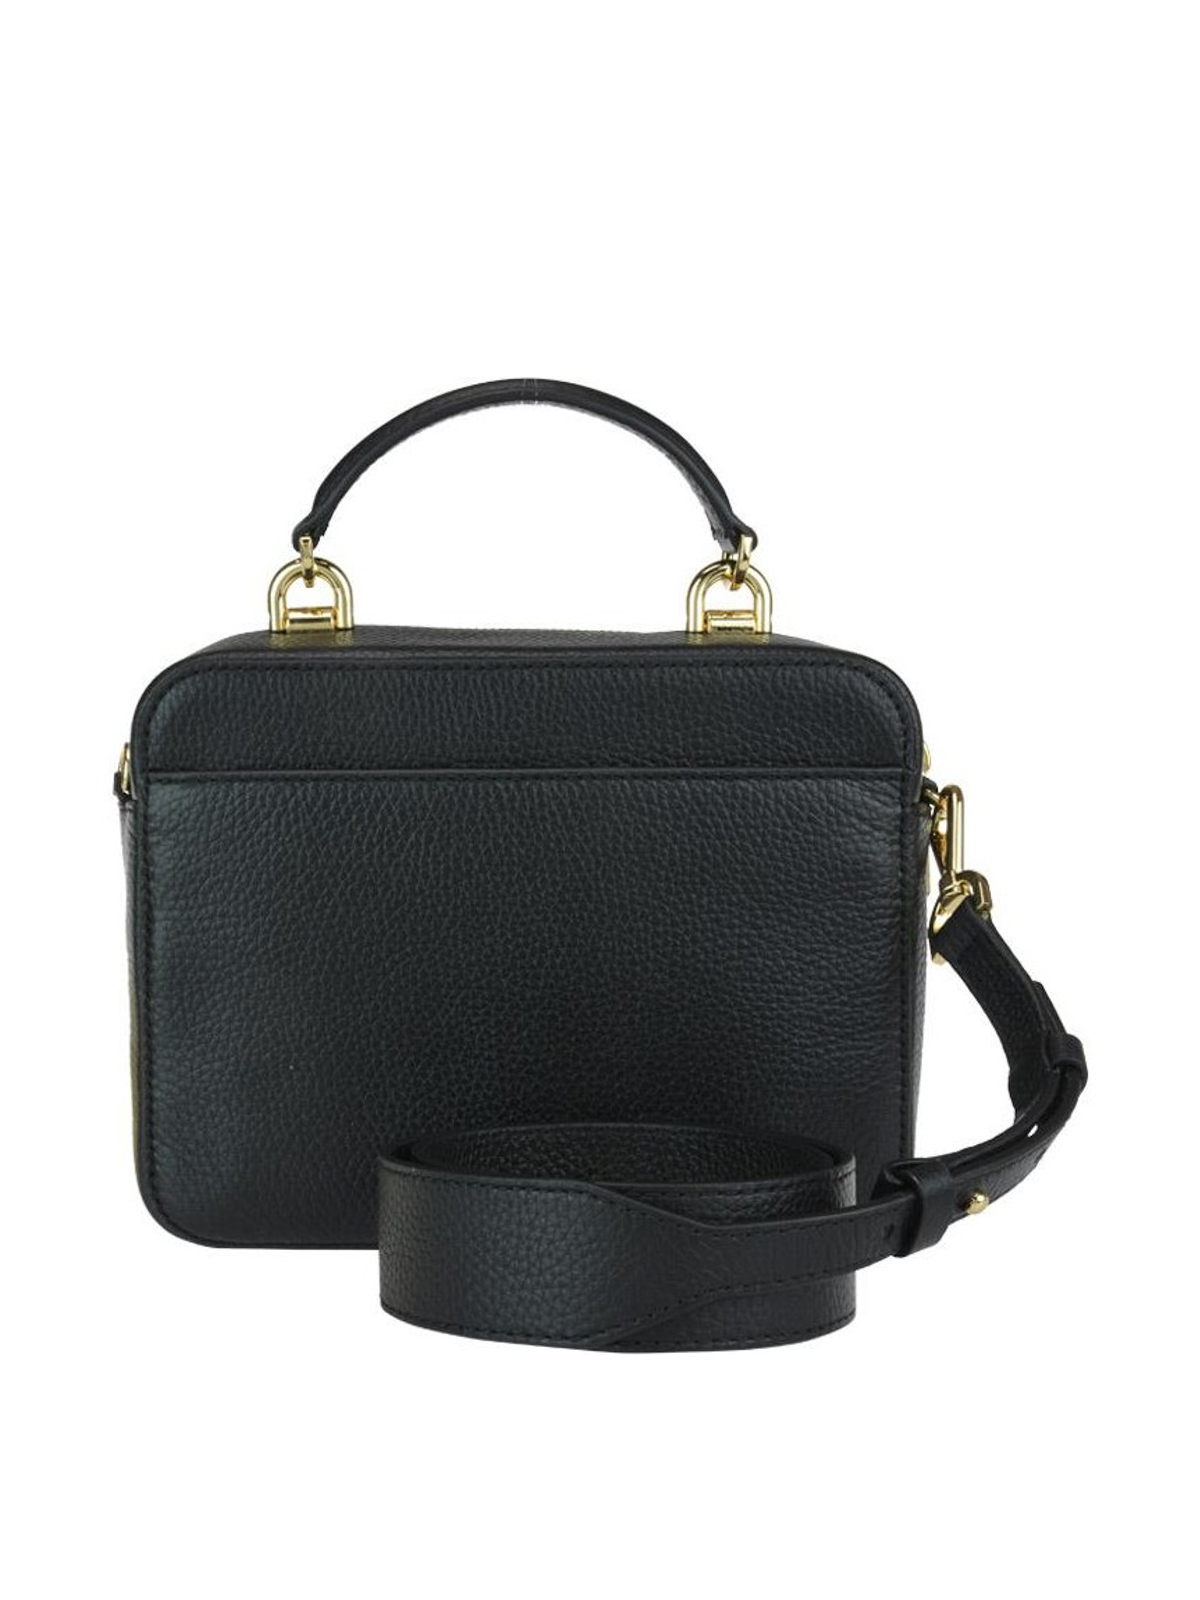 464dd227b850 iKRIX MICHAEL KORS: cross body bags - Black grained leather briefcase style  bag